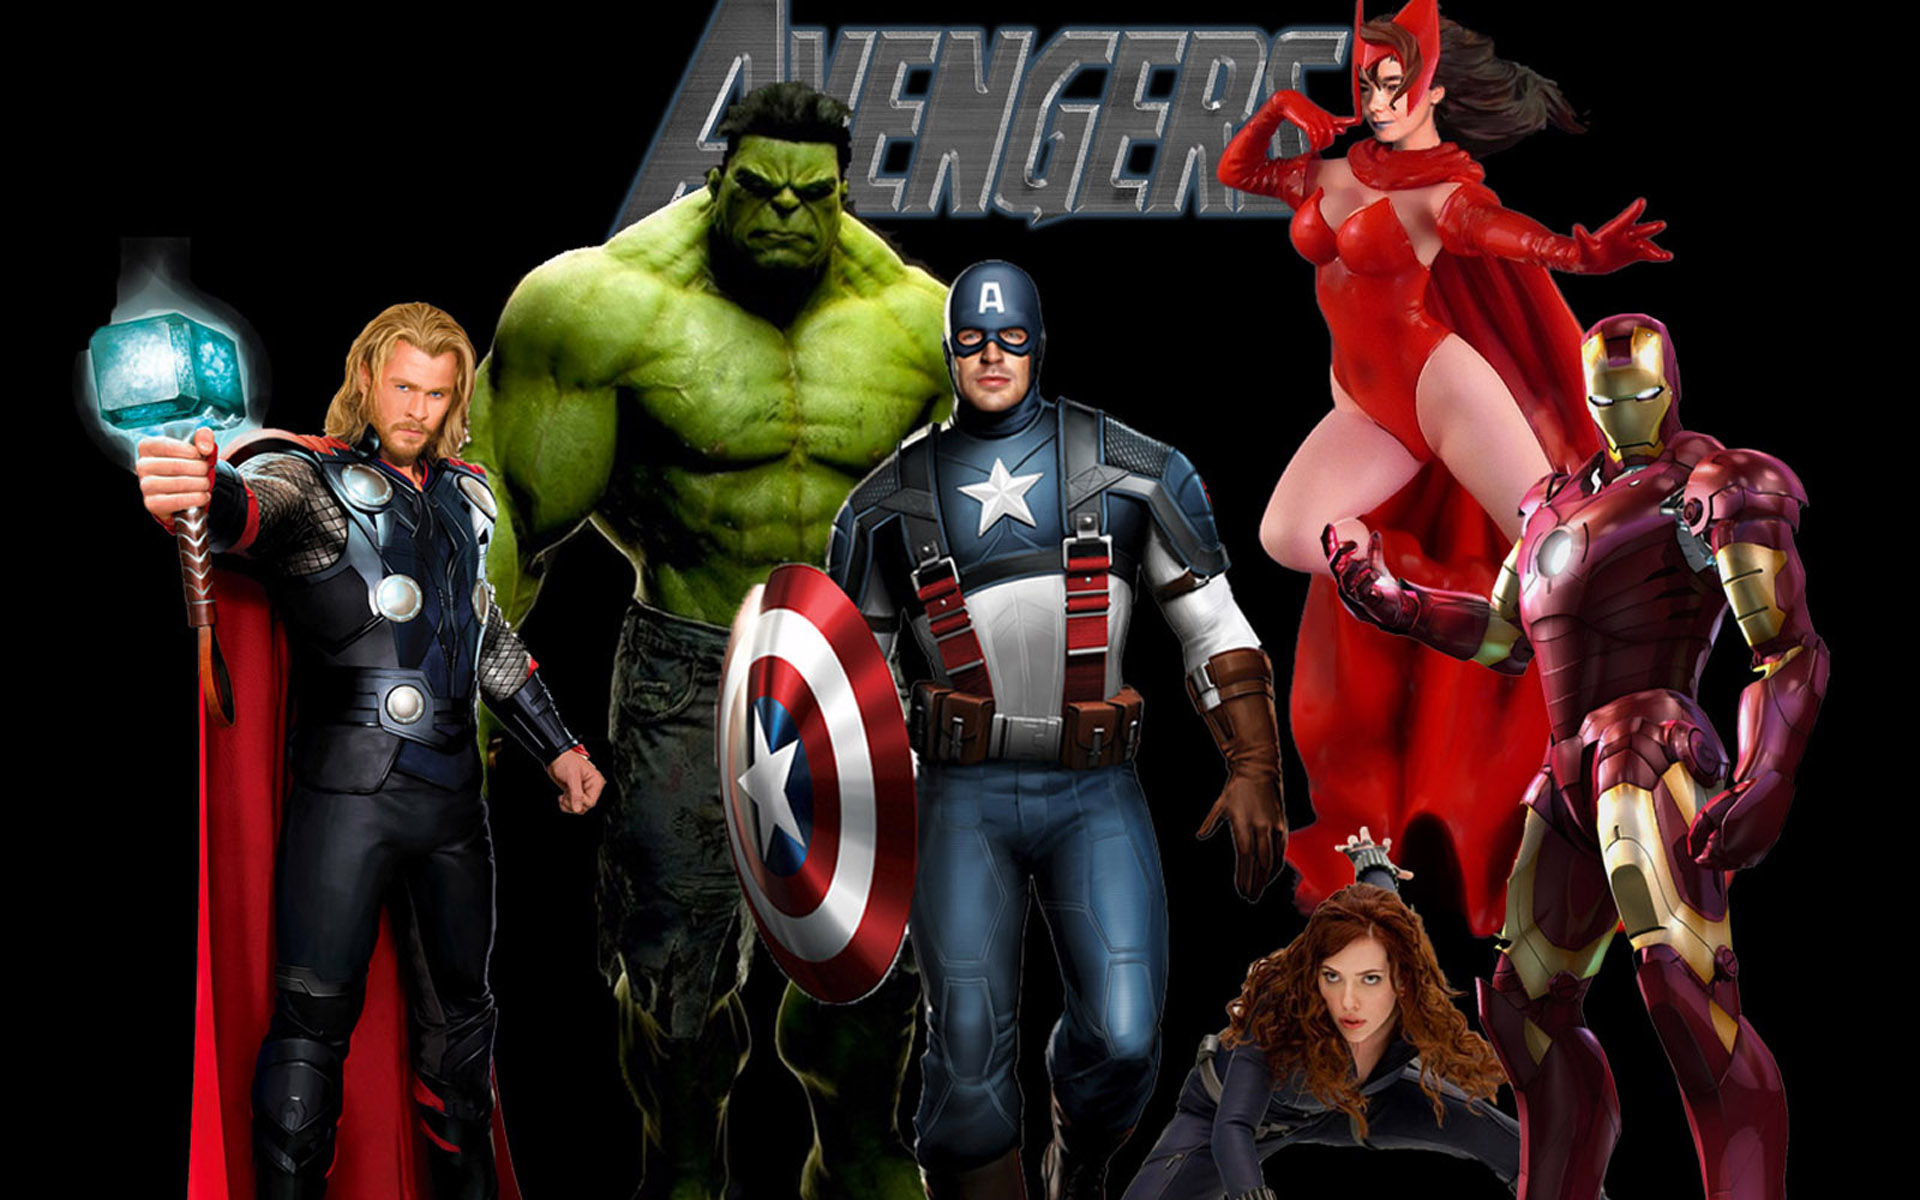 Avengers Movie wallpaper   866022 1920x1200